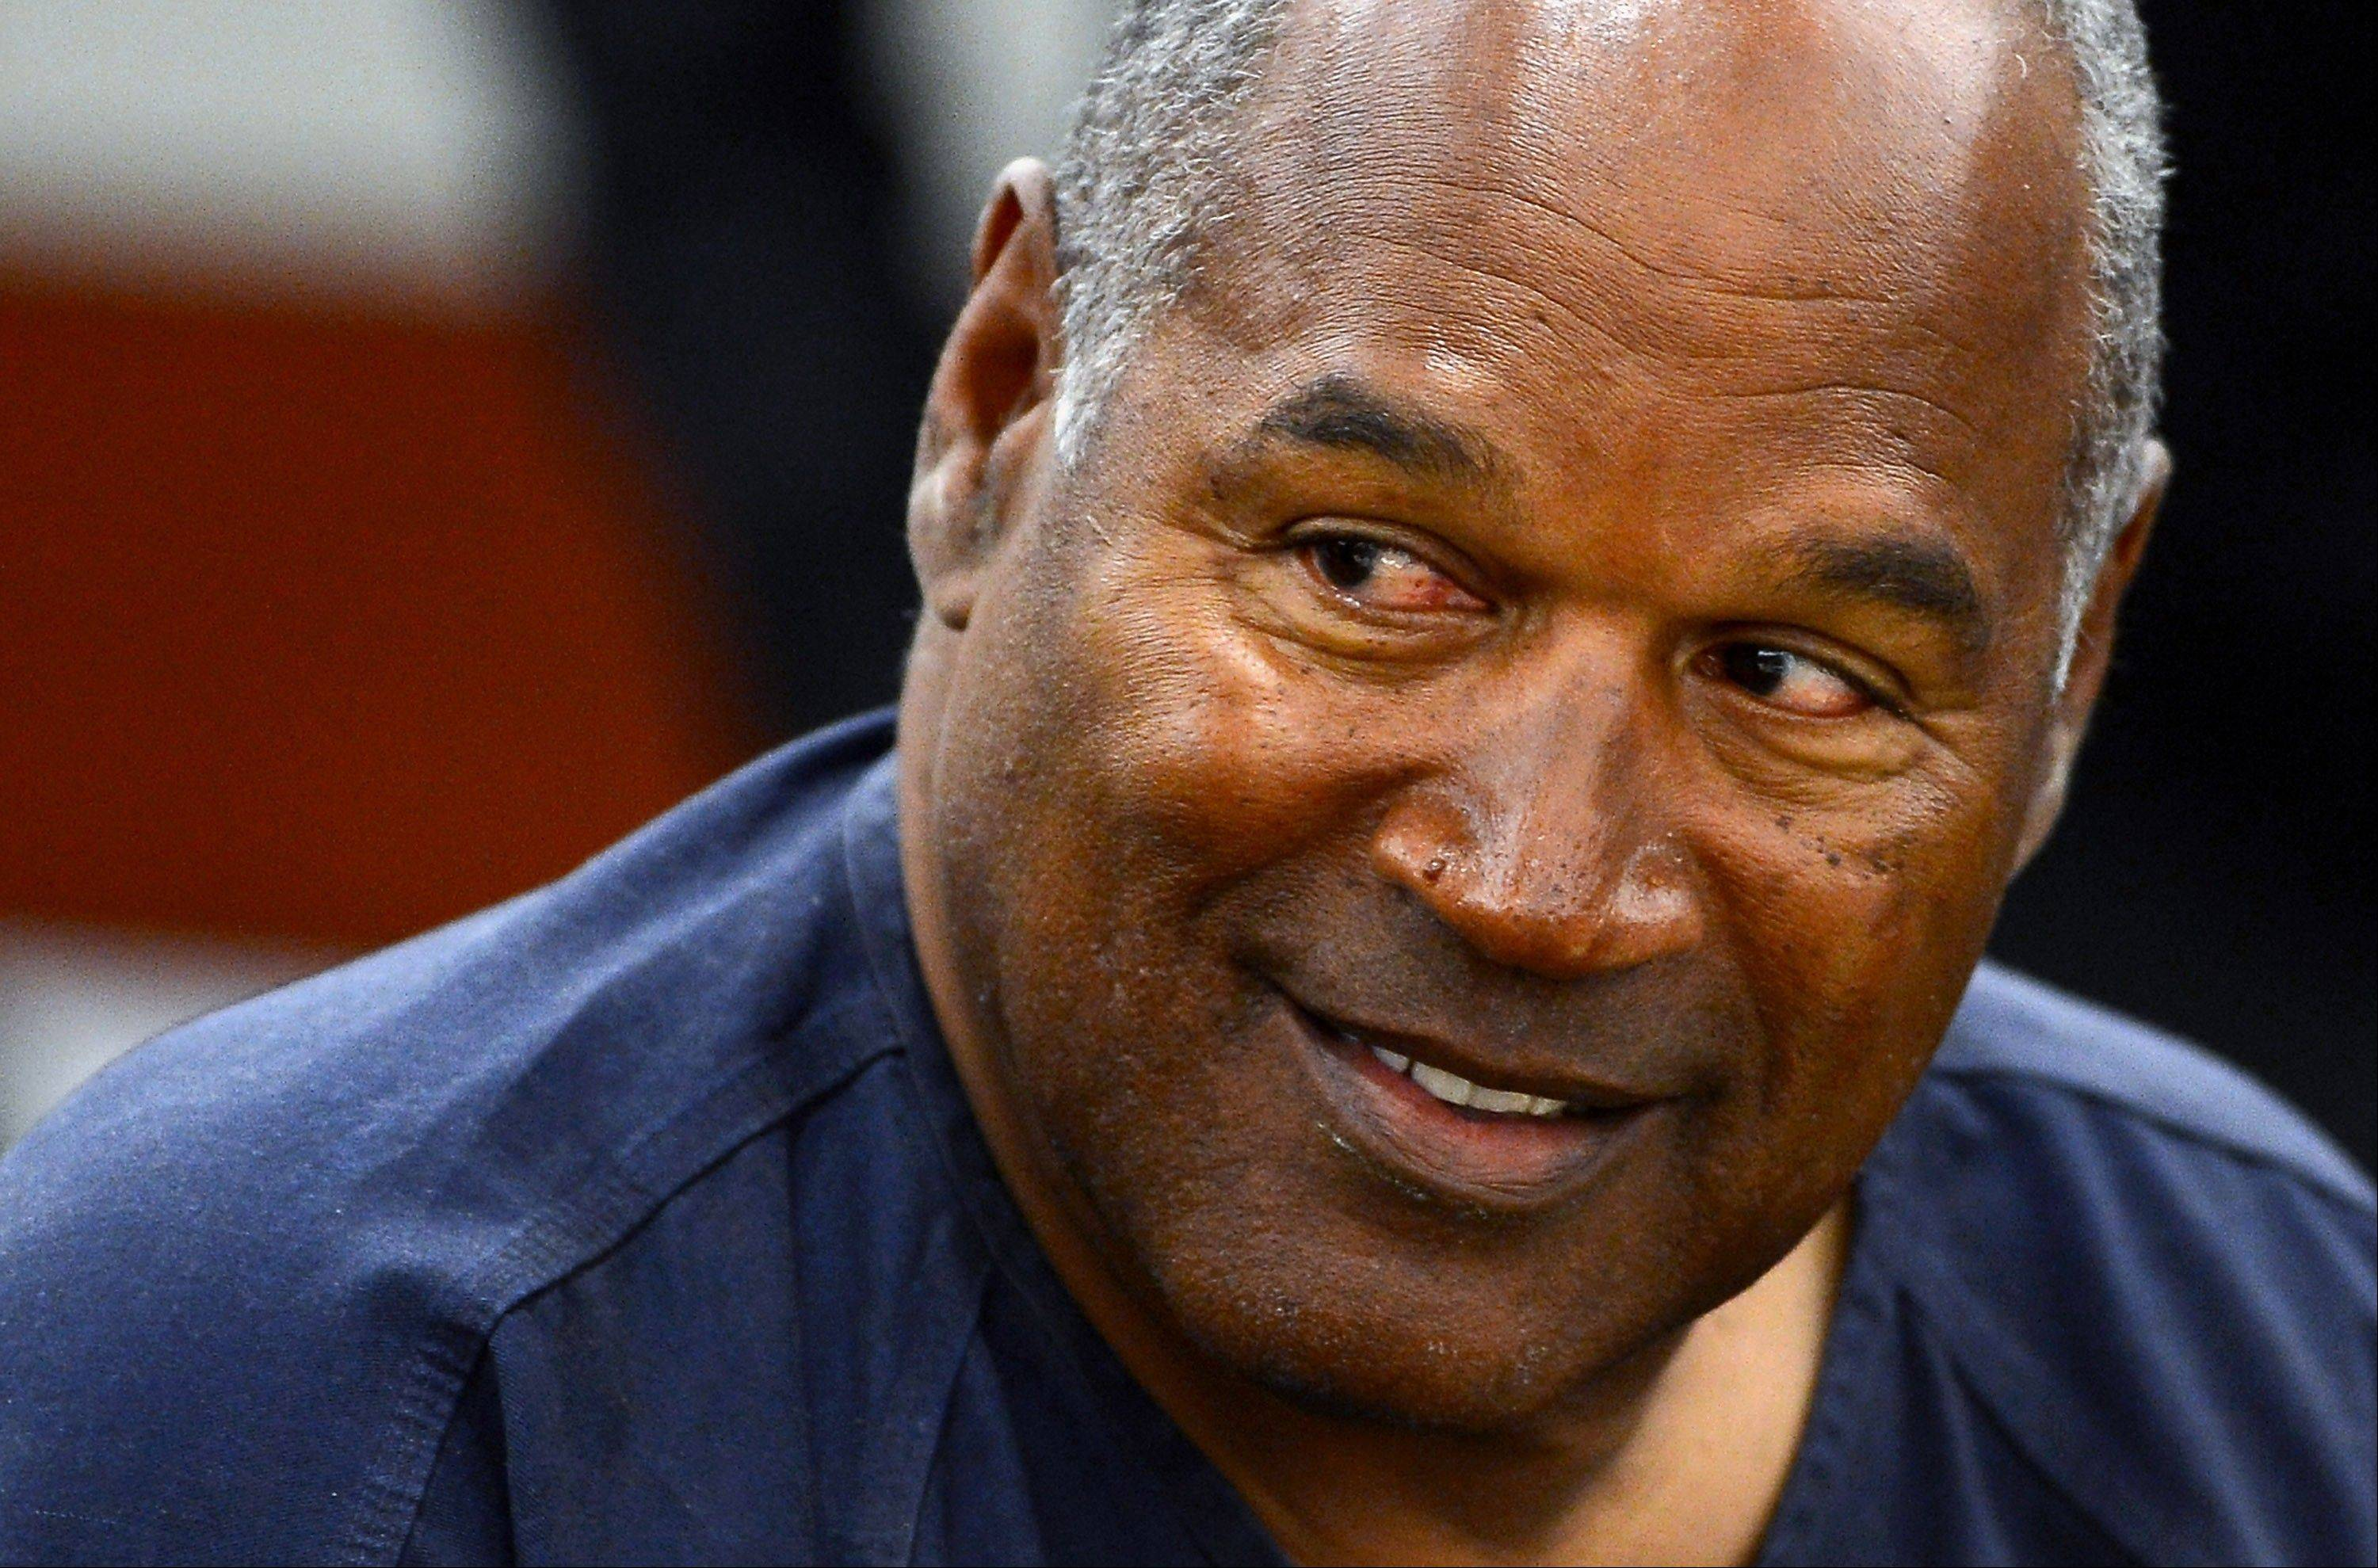 O.J. Simpson appears for the second day of an evidentiary hearing in Clark County District Court, Tuesday, May 14, 2013 in Las Vegas. The hearing is aimed at proving Simpson�s trial lawyer, Yale Galanter, had conflicted interests and shouldn�t have handled Simpson�s case. Simpson is serving nine to 33 years in prison for his 2008 conviction in the armed robbery of two sports memorabilia dealers in a Las Vegas hotel room.